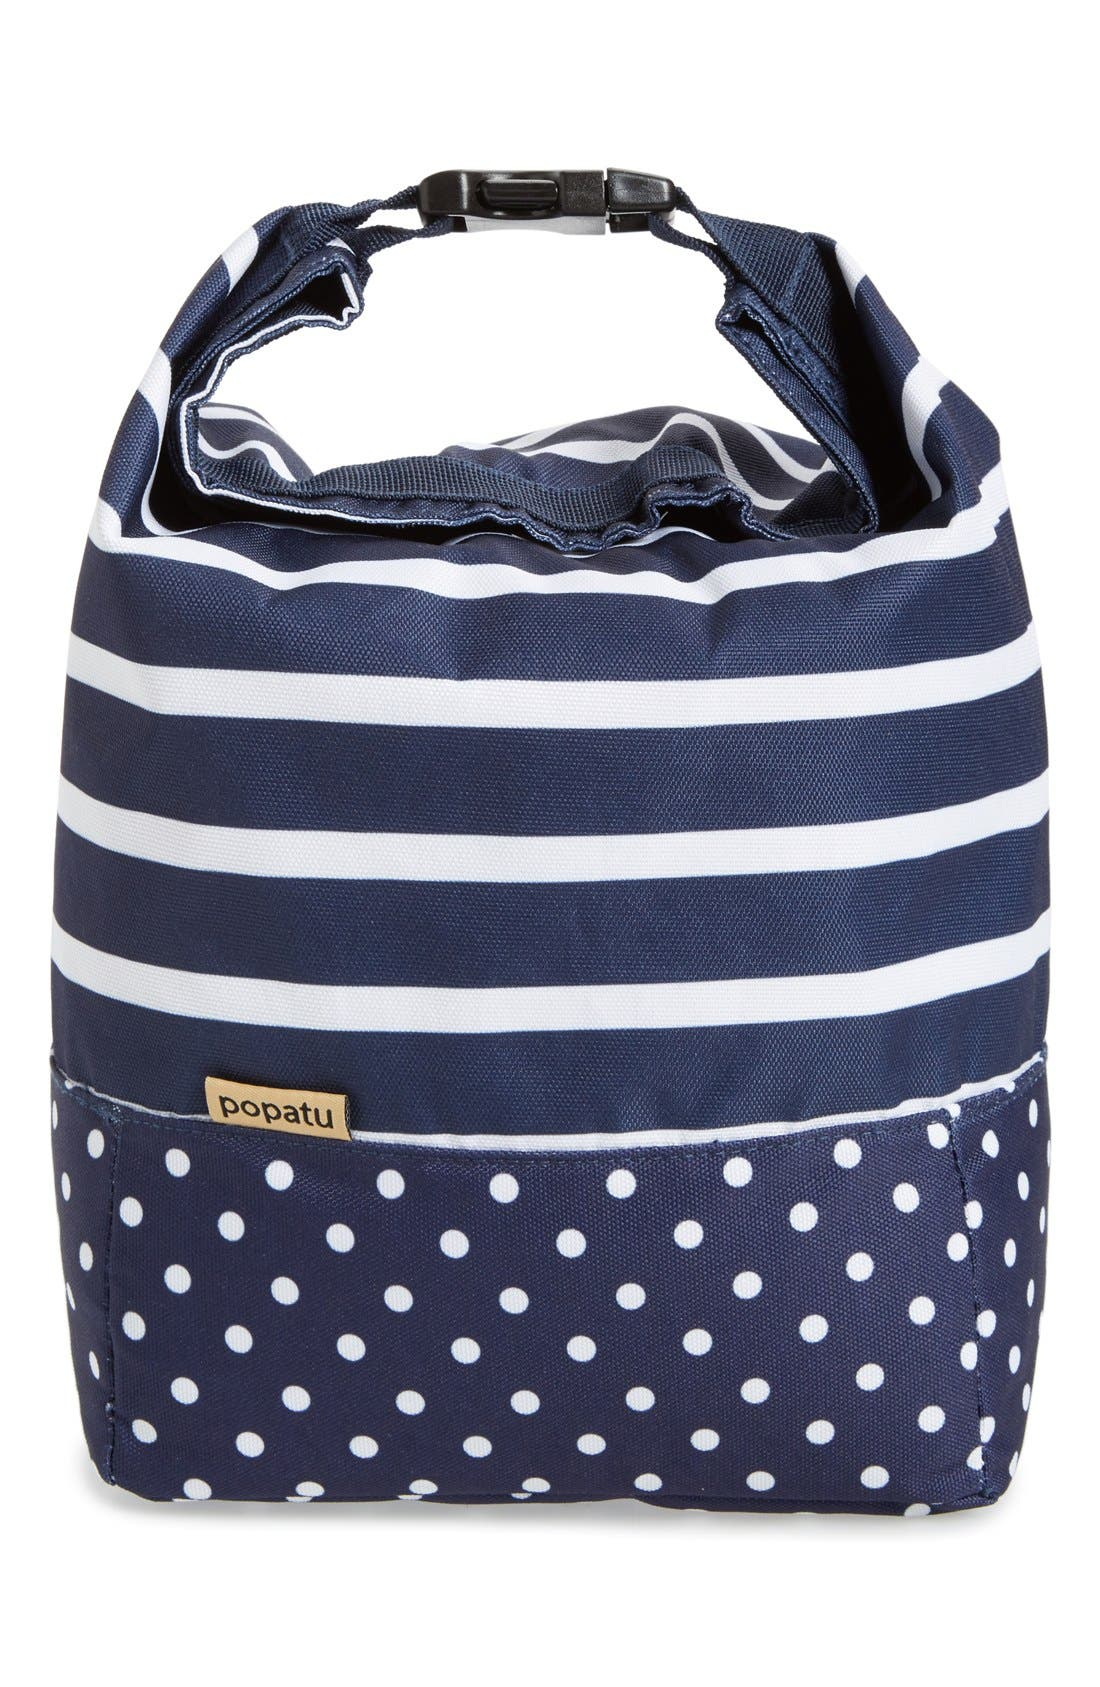 Roll Top Lunch Bag,                             Main thumbnail 1, color,                             411